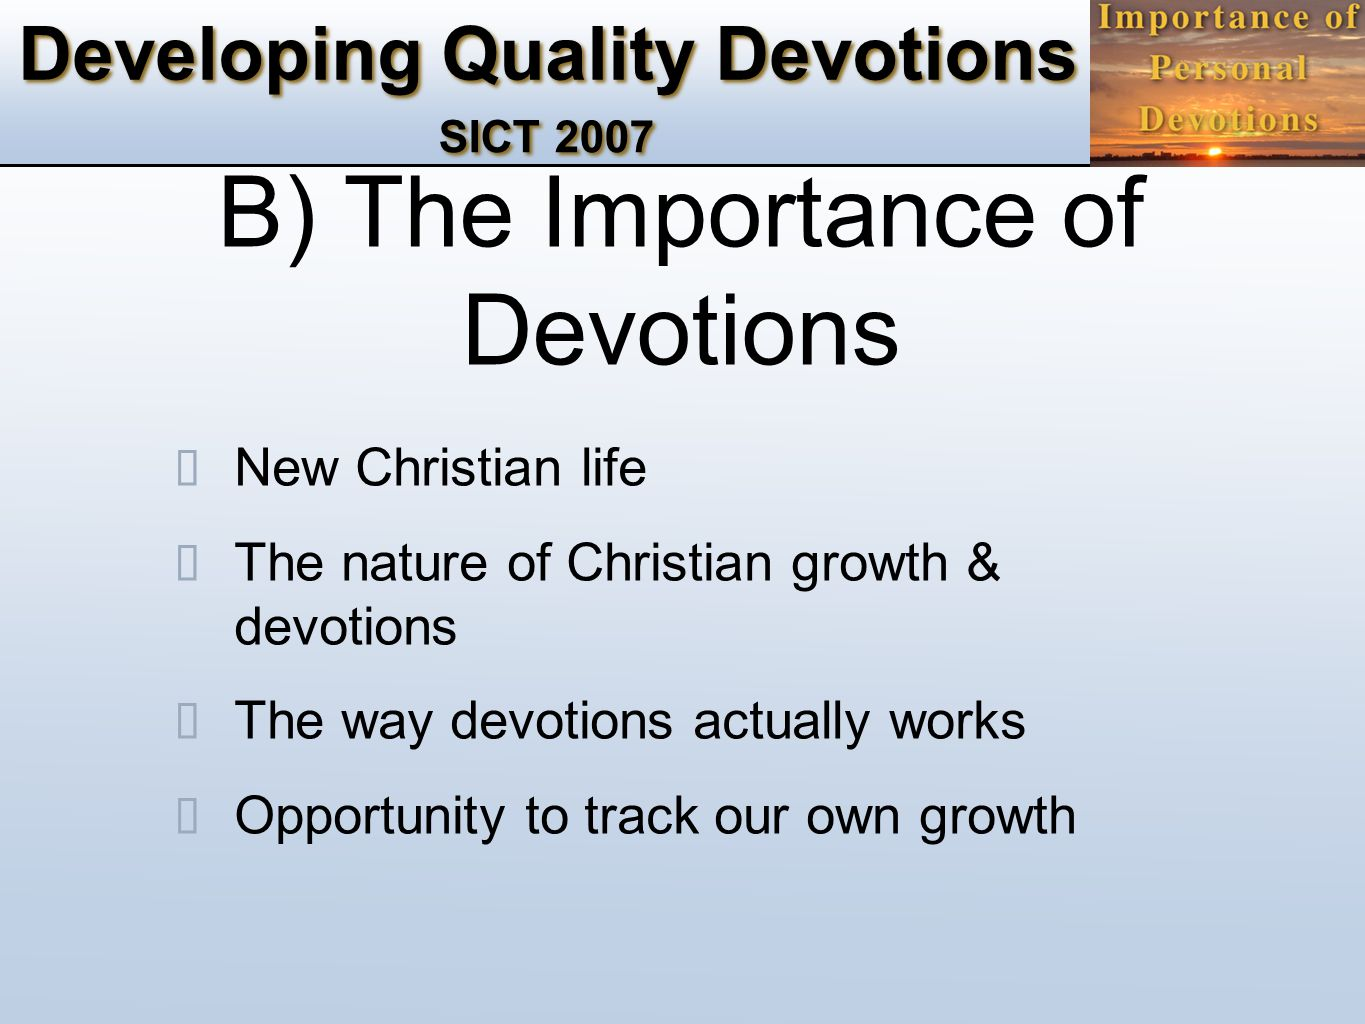 Developing Quality Devotions SICT 2007 B) The Importance of Devotions ✴ New Christian life ✴ The nature of Christian growth & devotions ✴ The way devo